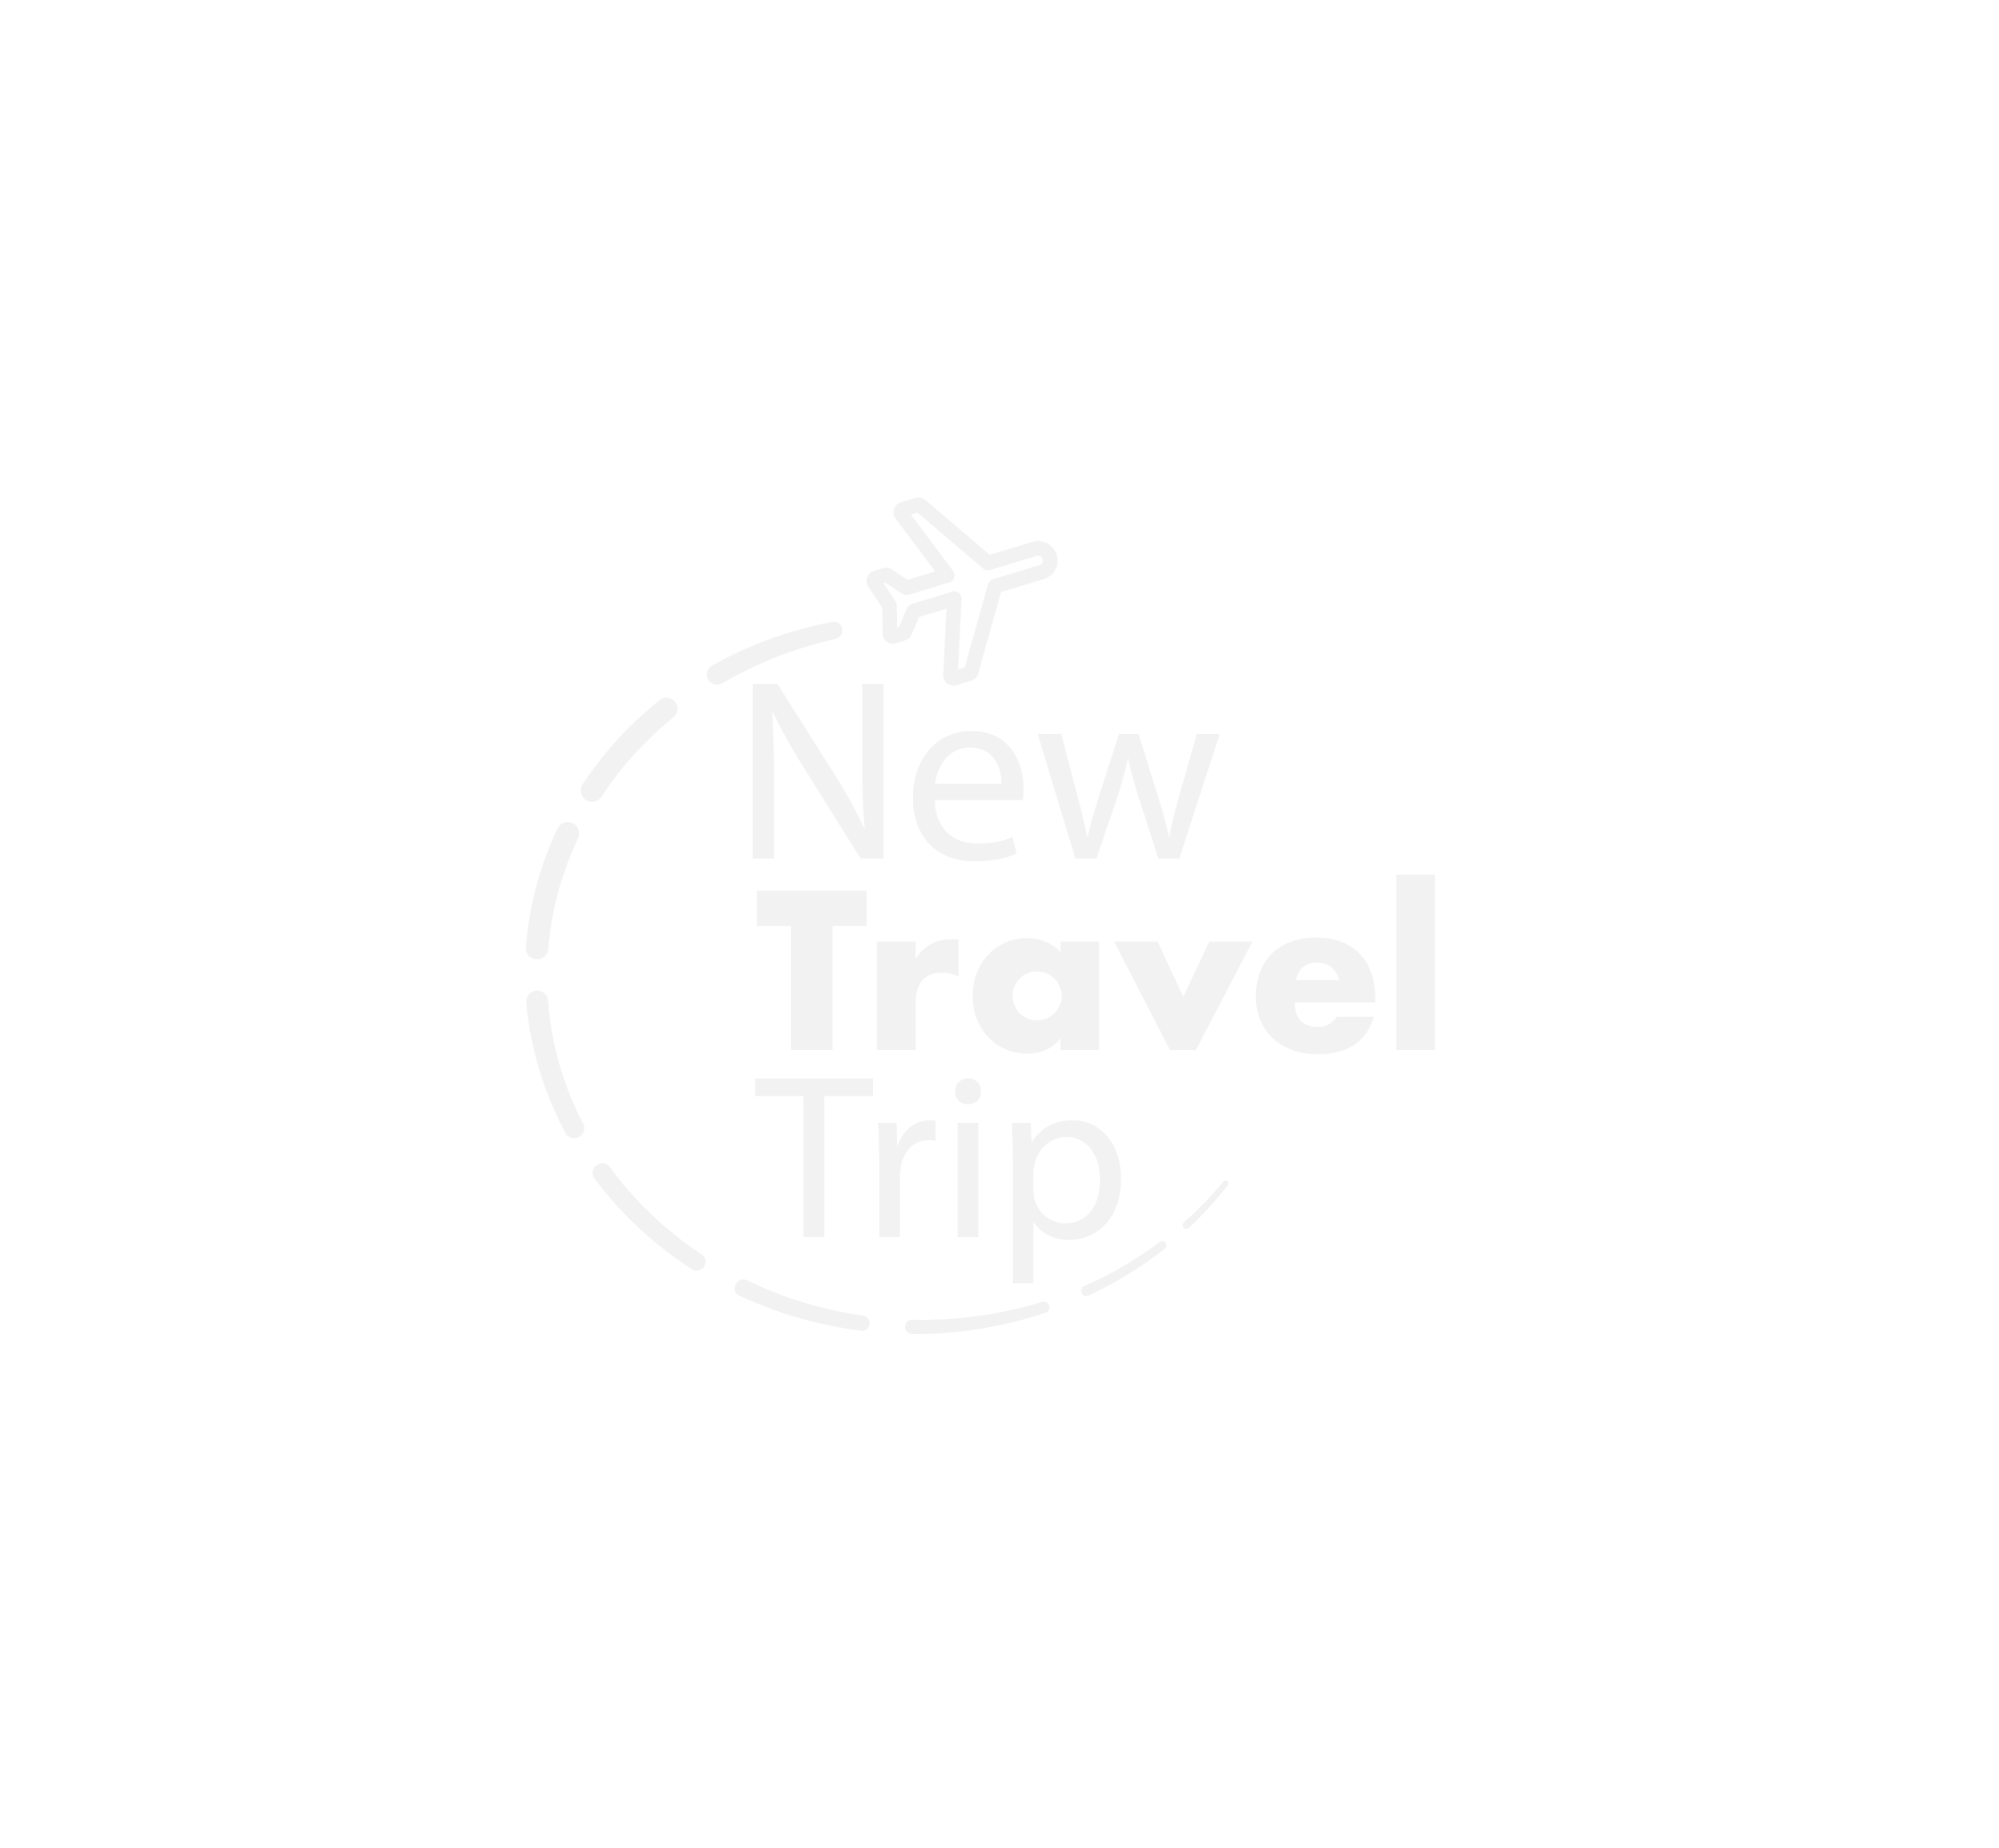 New Travel Trip logo